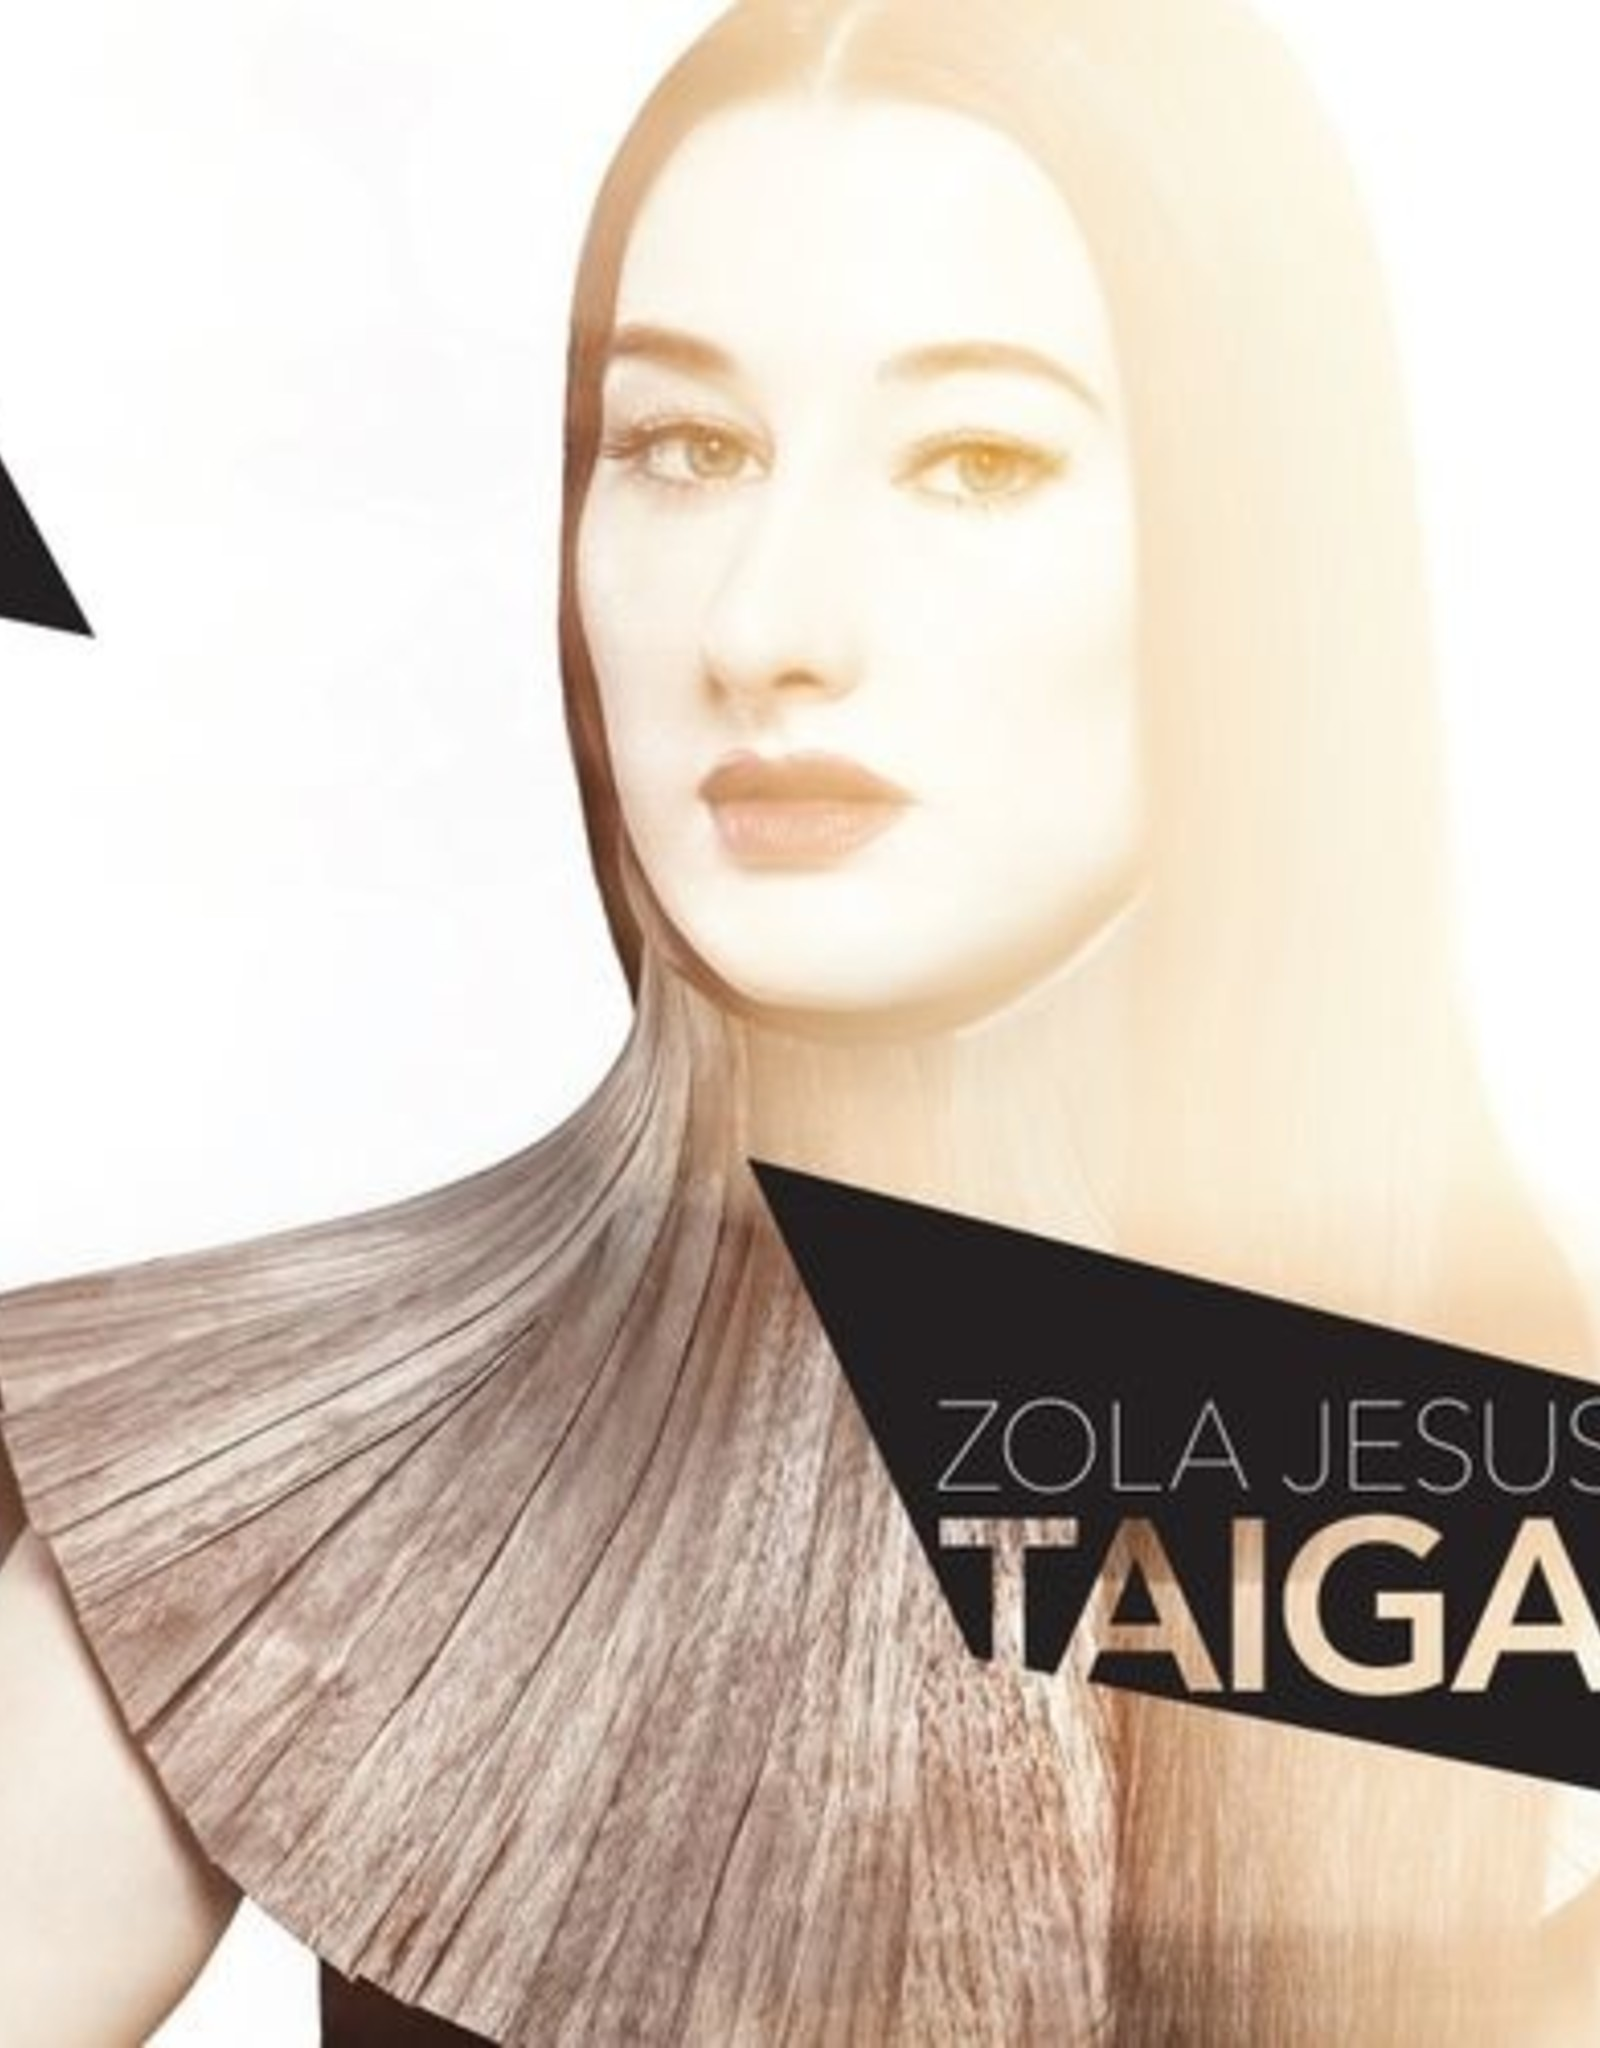 Zola Jesus - Taiga (Marbled Color Vinyl)